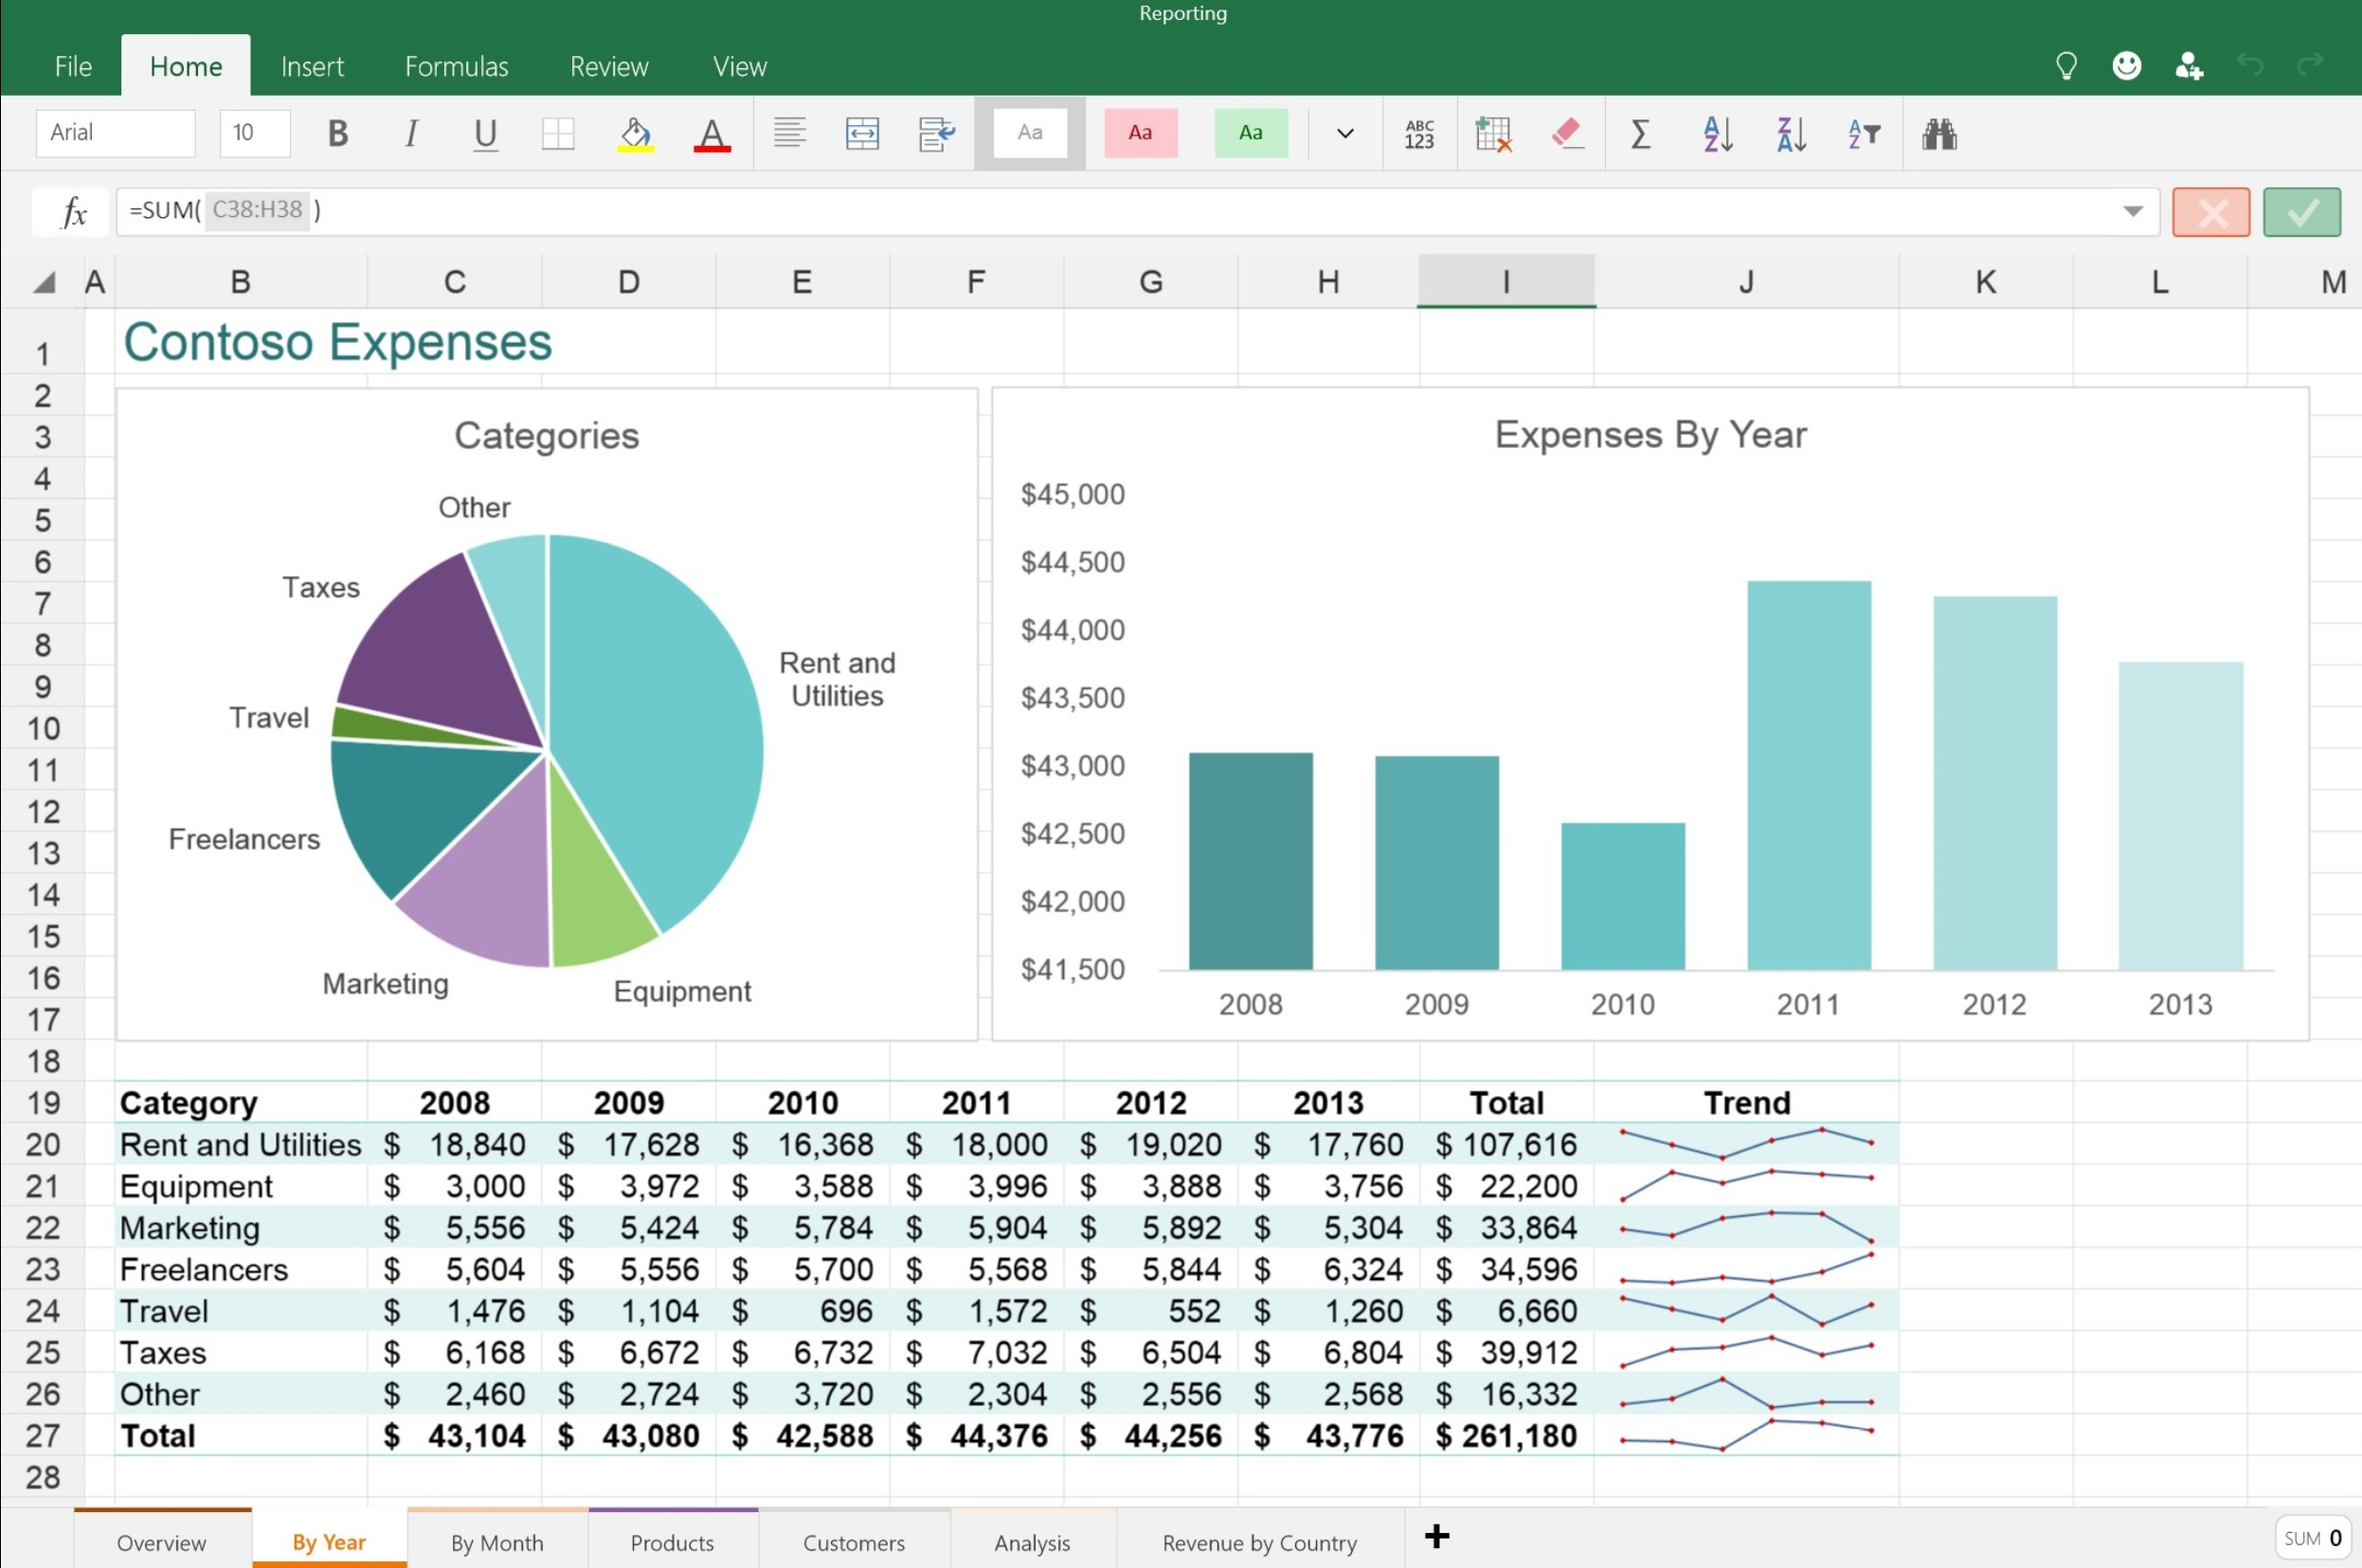 Ediblewildsus  Inspiring Features Available In The New Word Excel And Powerpoint Apps For  With Hot Excel Touch App  With Extraordinary Useful Macros In Excel Also Day Of Week Excel Formula In Addition Find Last Row In Excel Vba And Compare Two Spreadsheets In Excel As Well As How To See Formula In Excel Additionally Compare Two Spreadsheets In Excel From Mspowerusercom With Ediblewildsus  Hot Features Available In The New Word Excel And Powerpoint Apps For  With Extraordinary Excel Touch App  And Inspiring Useful Macros In Excel Also Day Of Week Excel Formula In Addition Find Last Row In Excel Vba From Mspowerusercom